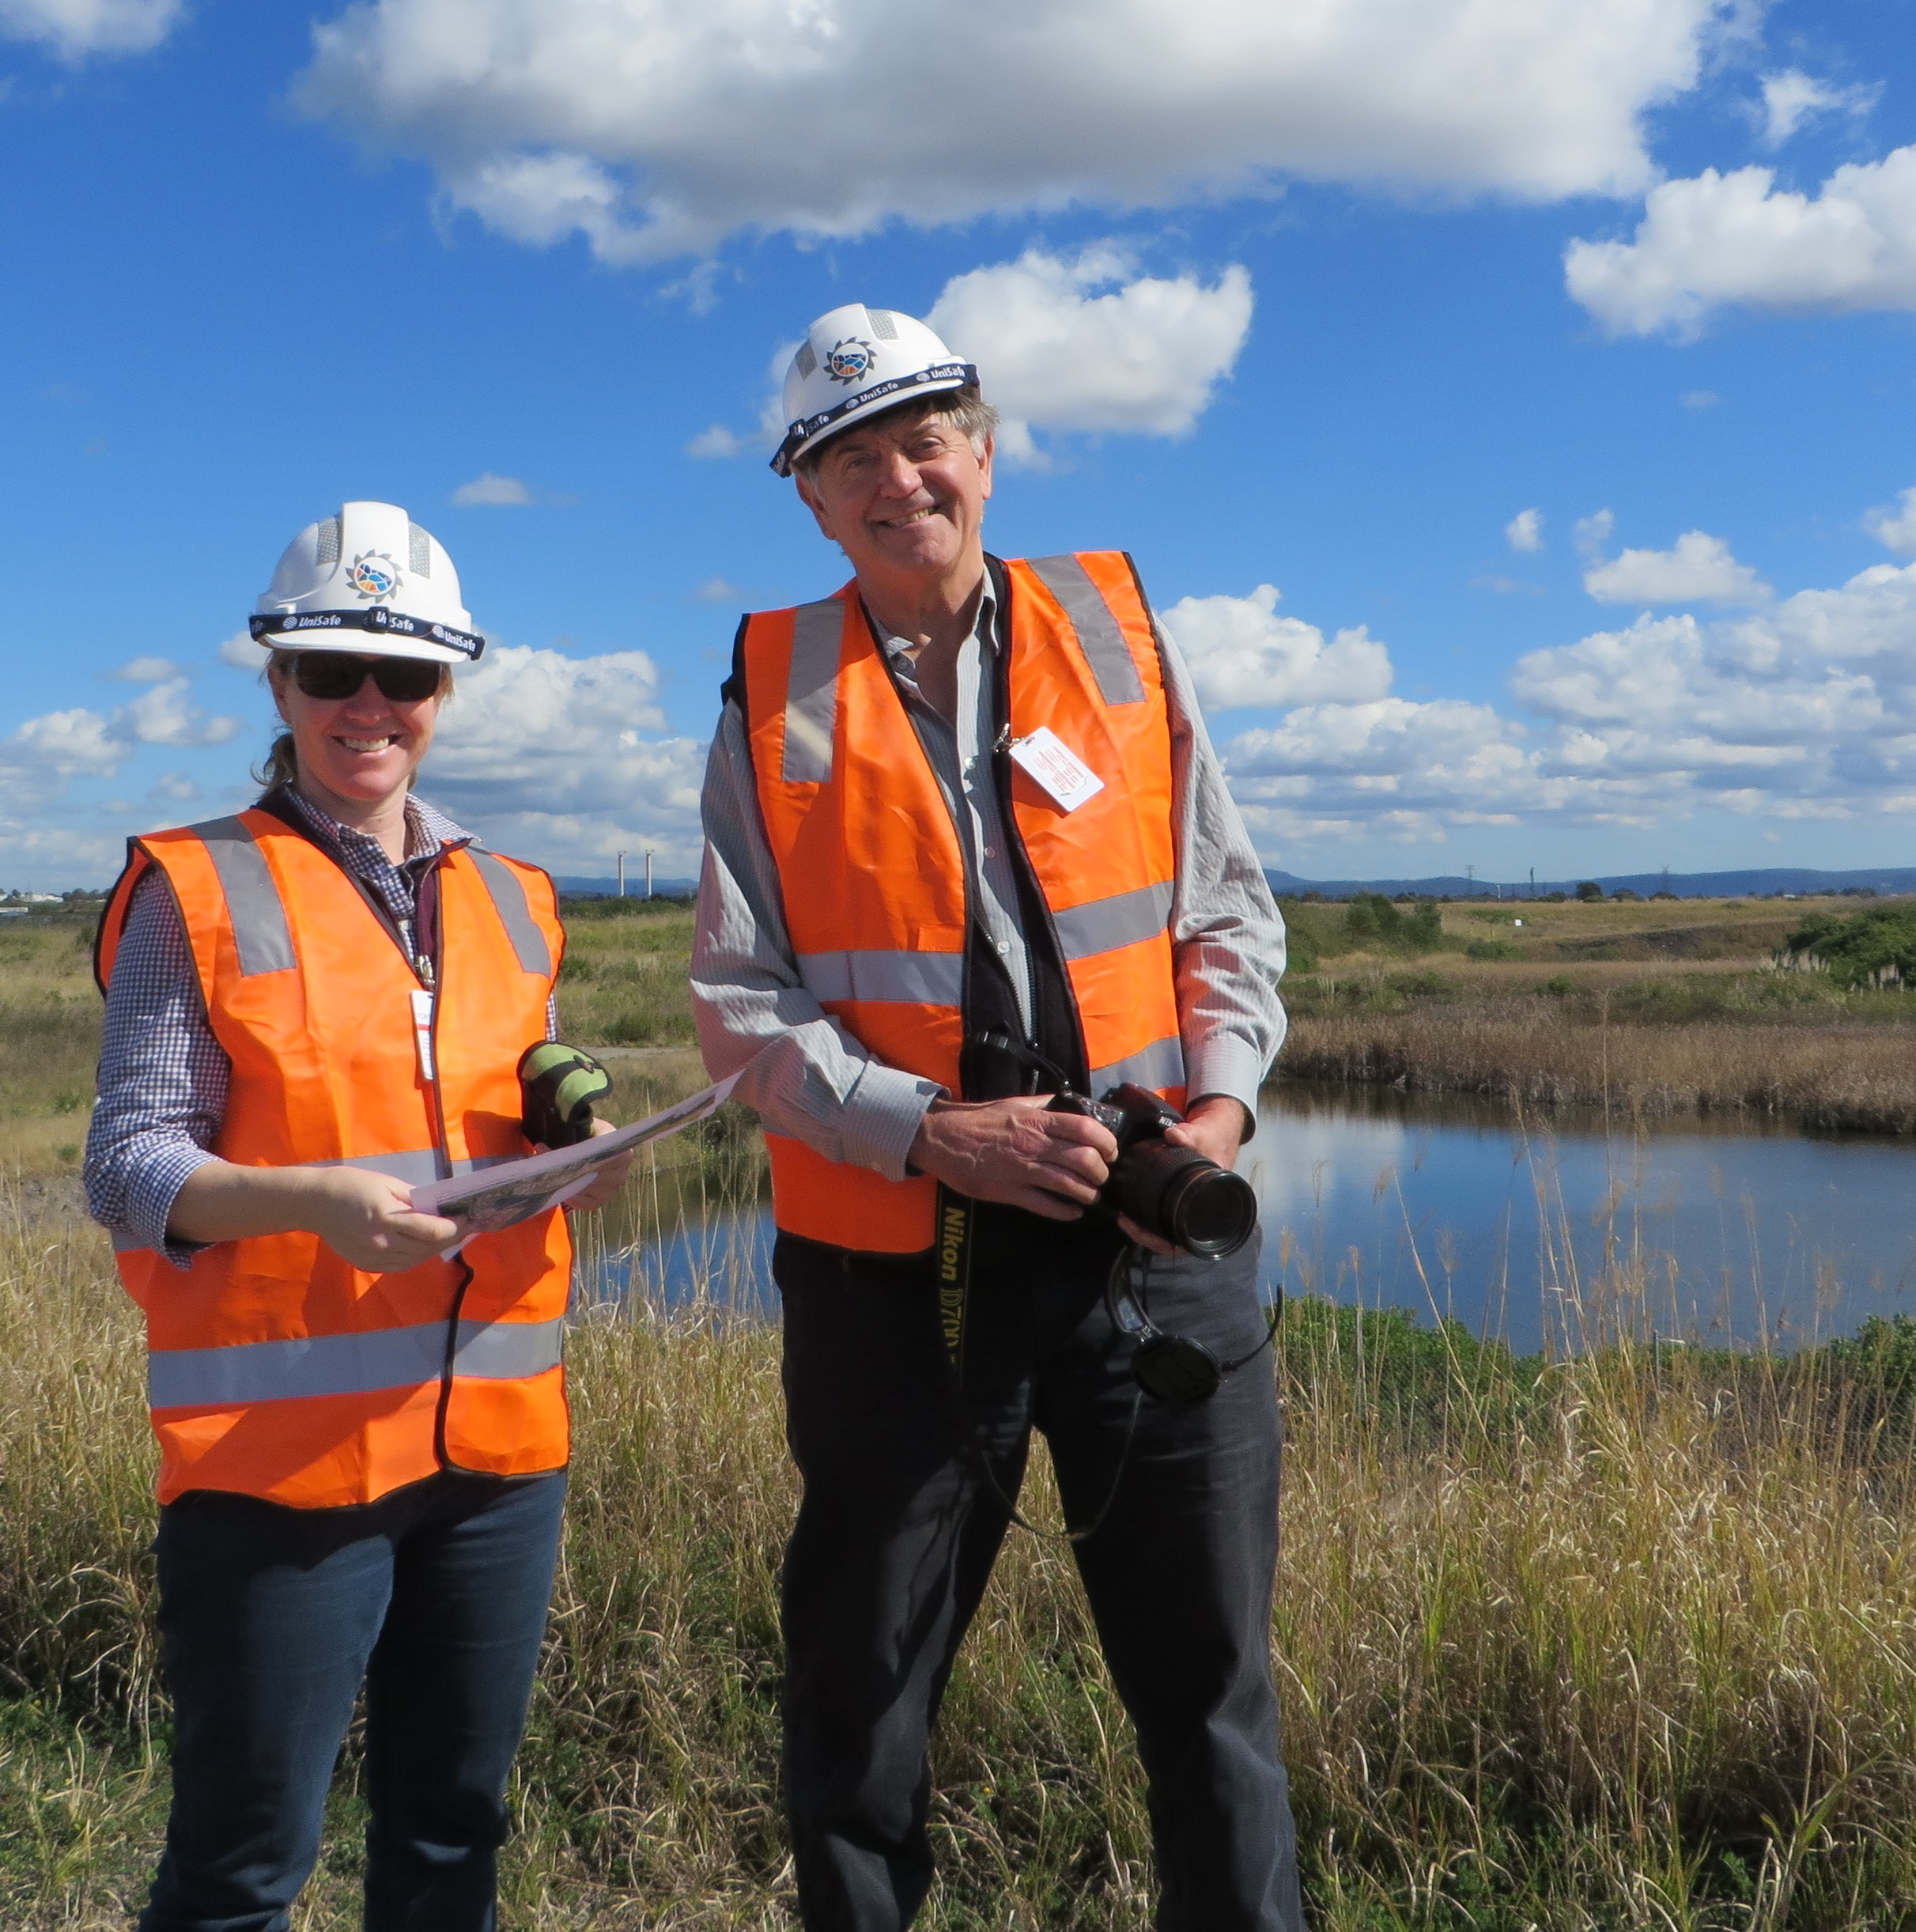 Inspecting frog ponds on Kooragang Island (Australia).